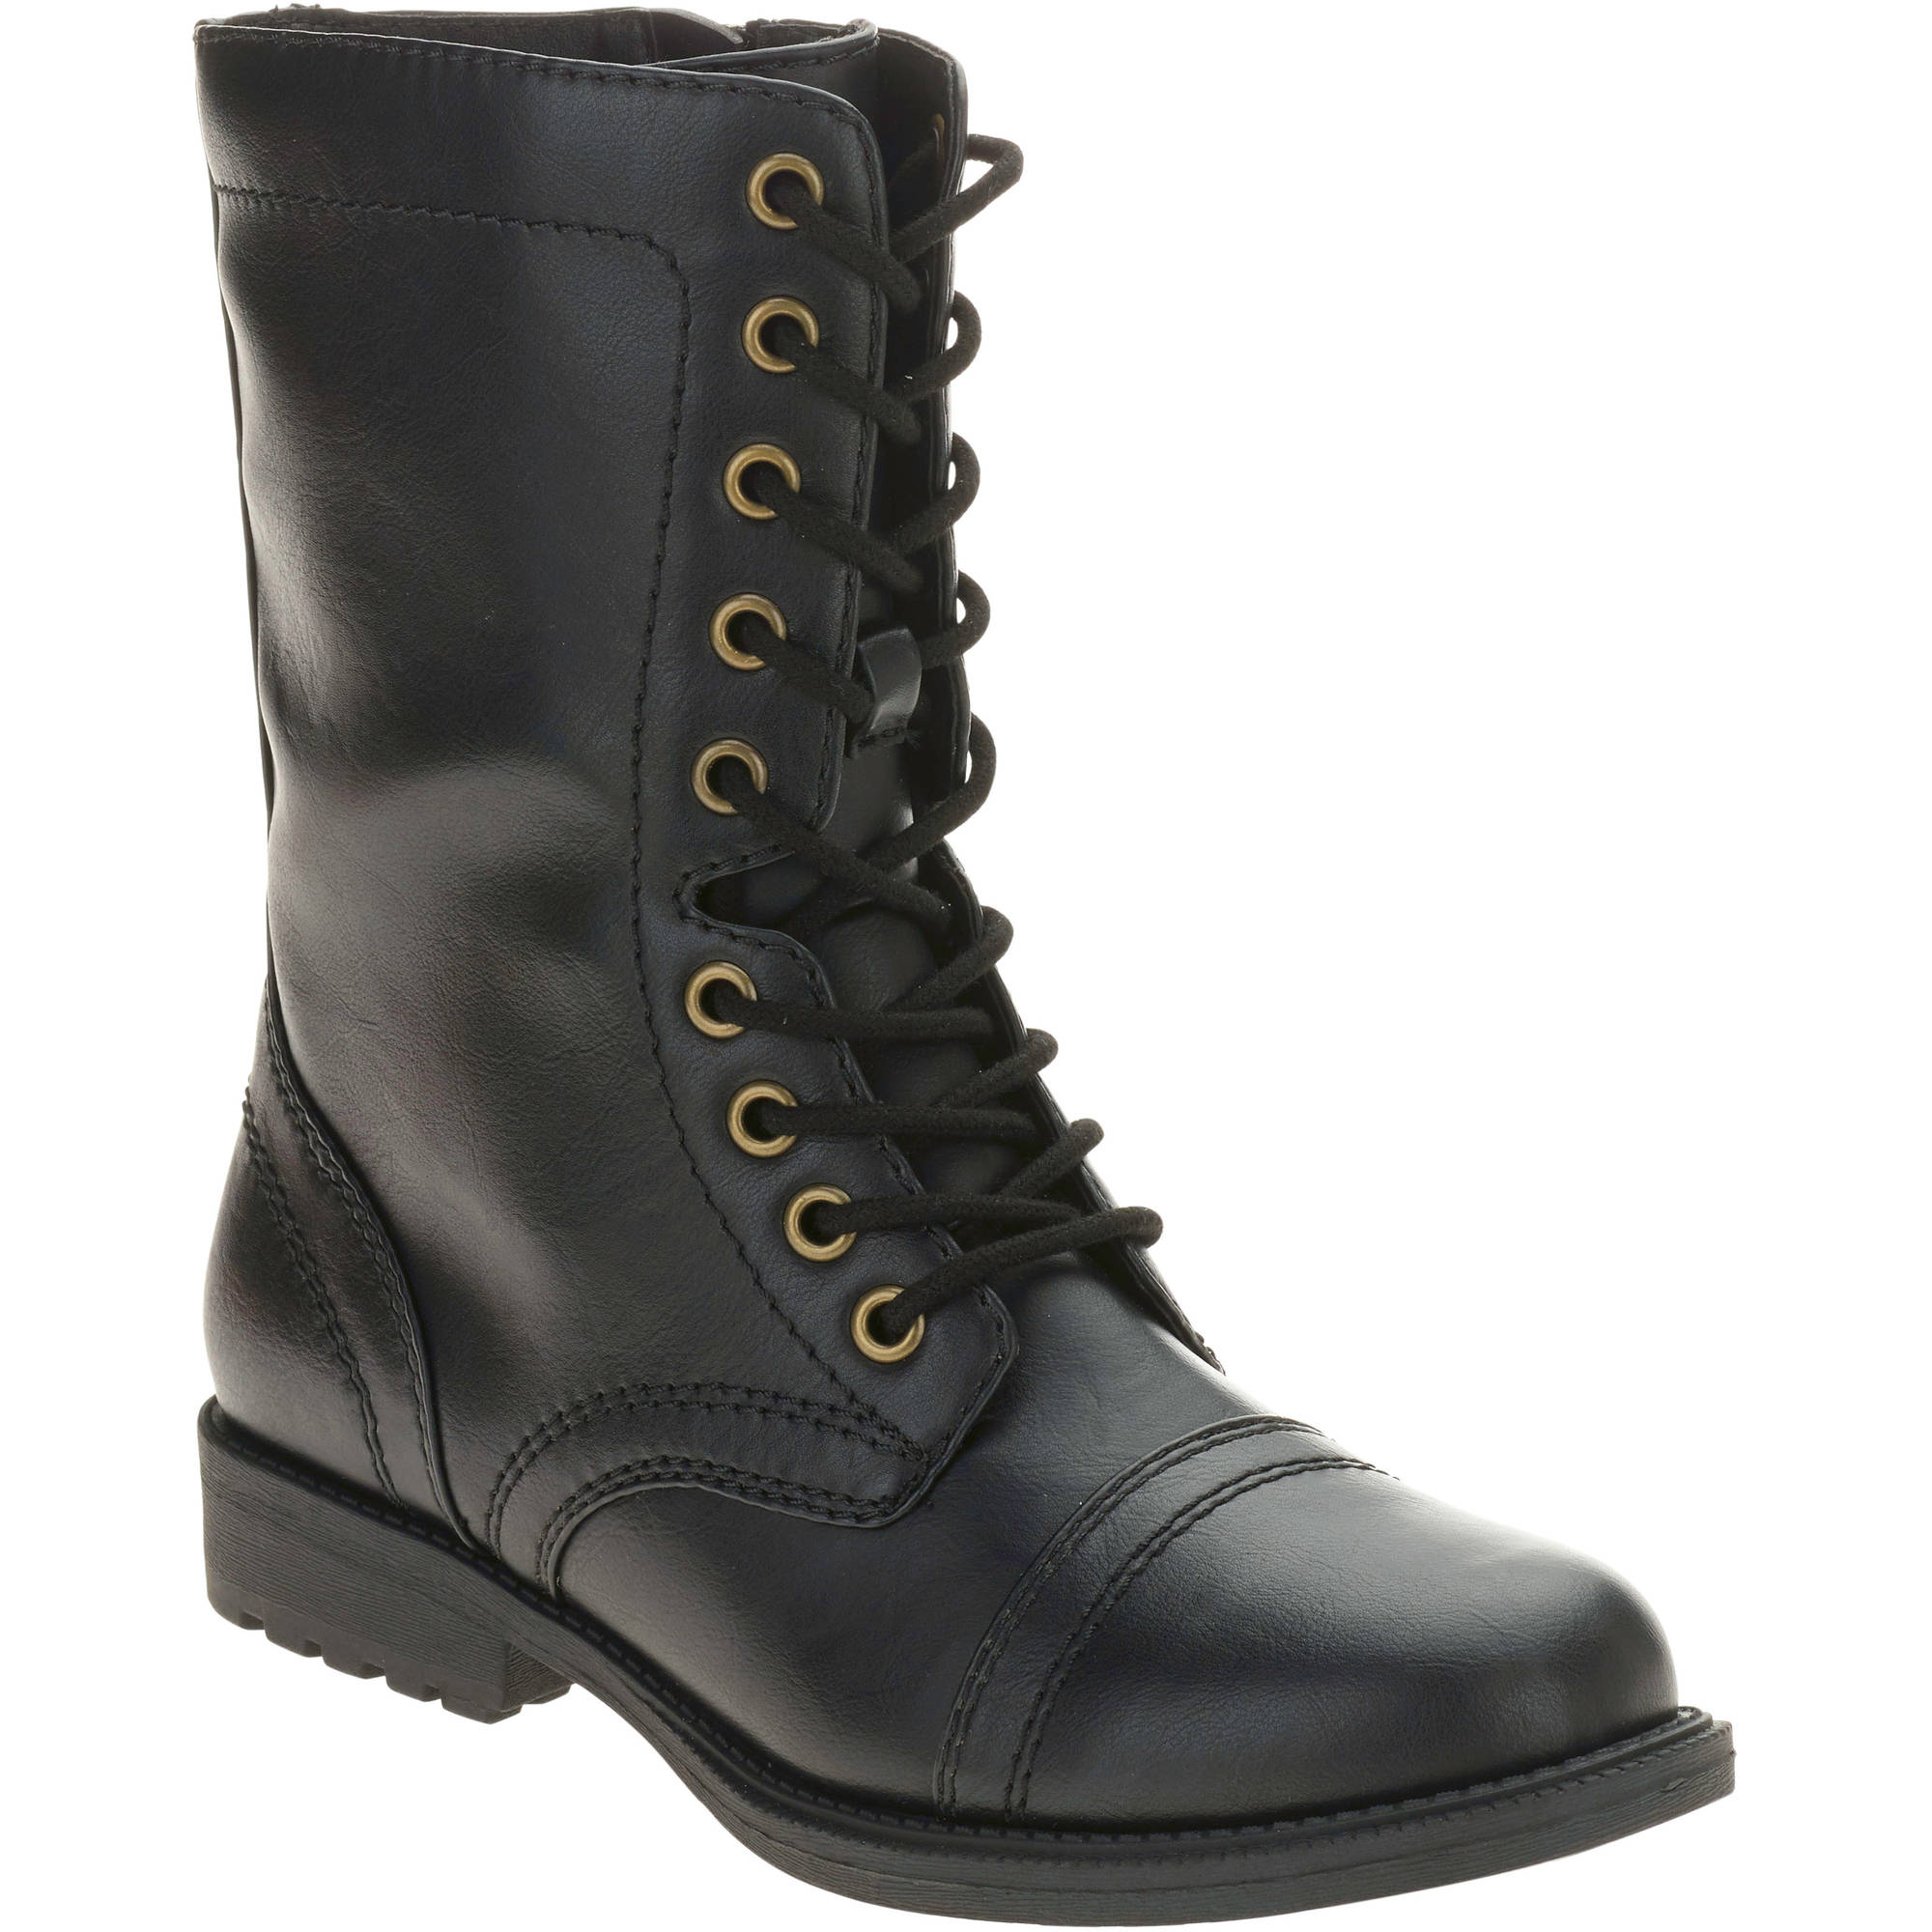 combat boots image is loading combat-boots-women-up-lace-military-shoes-high- gednhlk